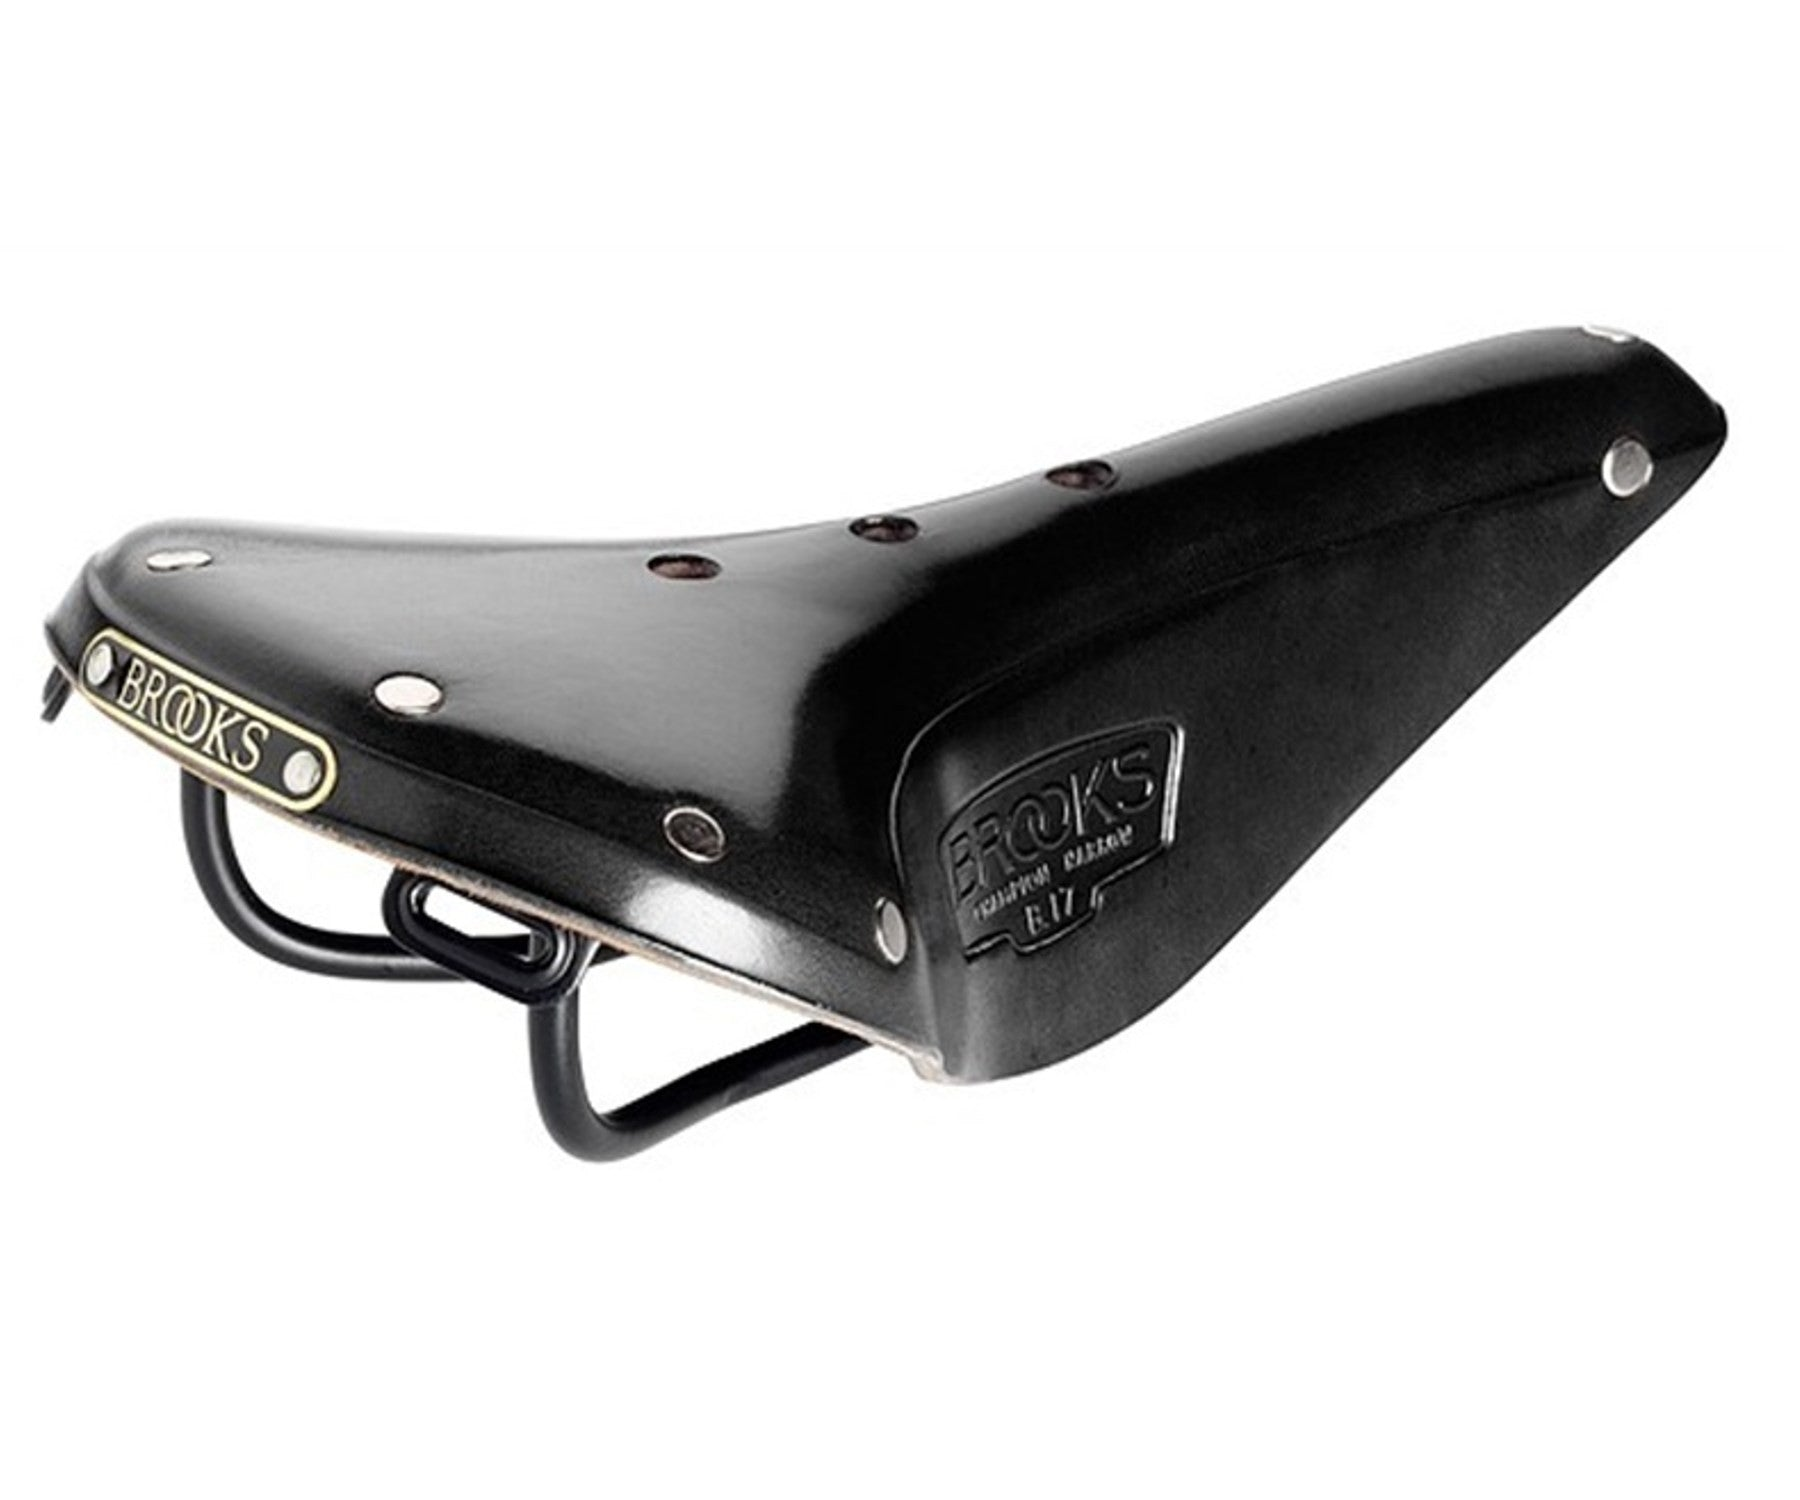 Brooks B17 Narrow saddle - Retrogression